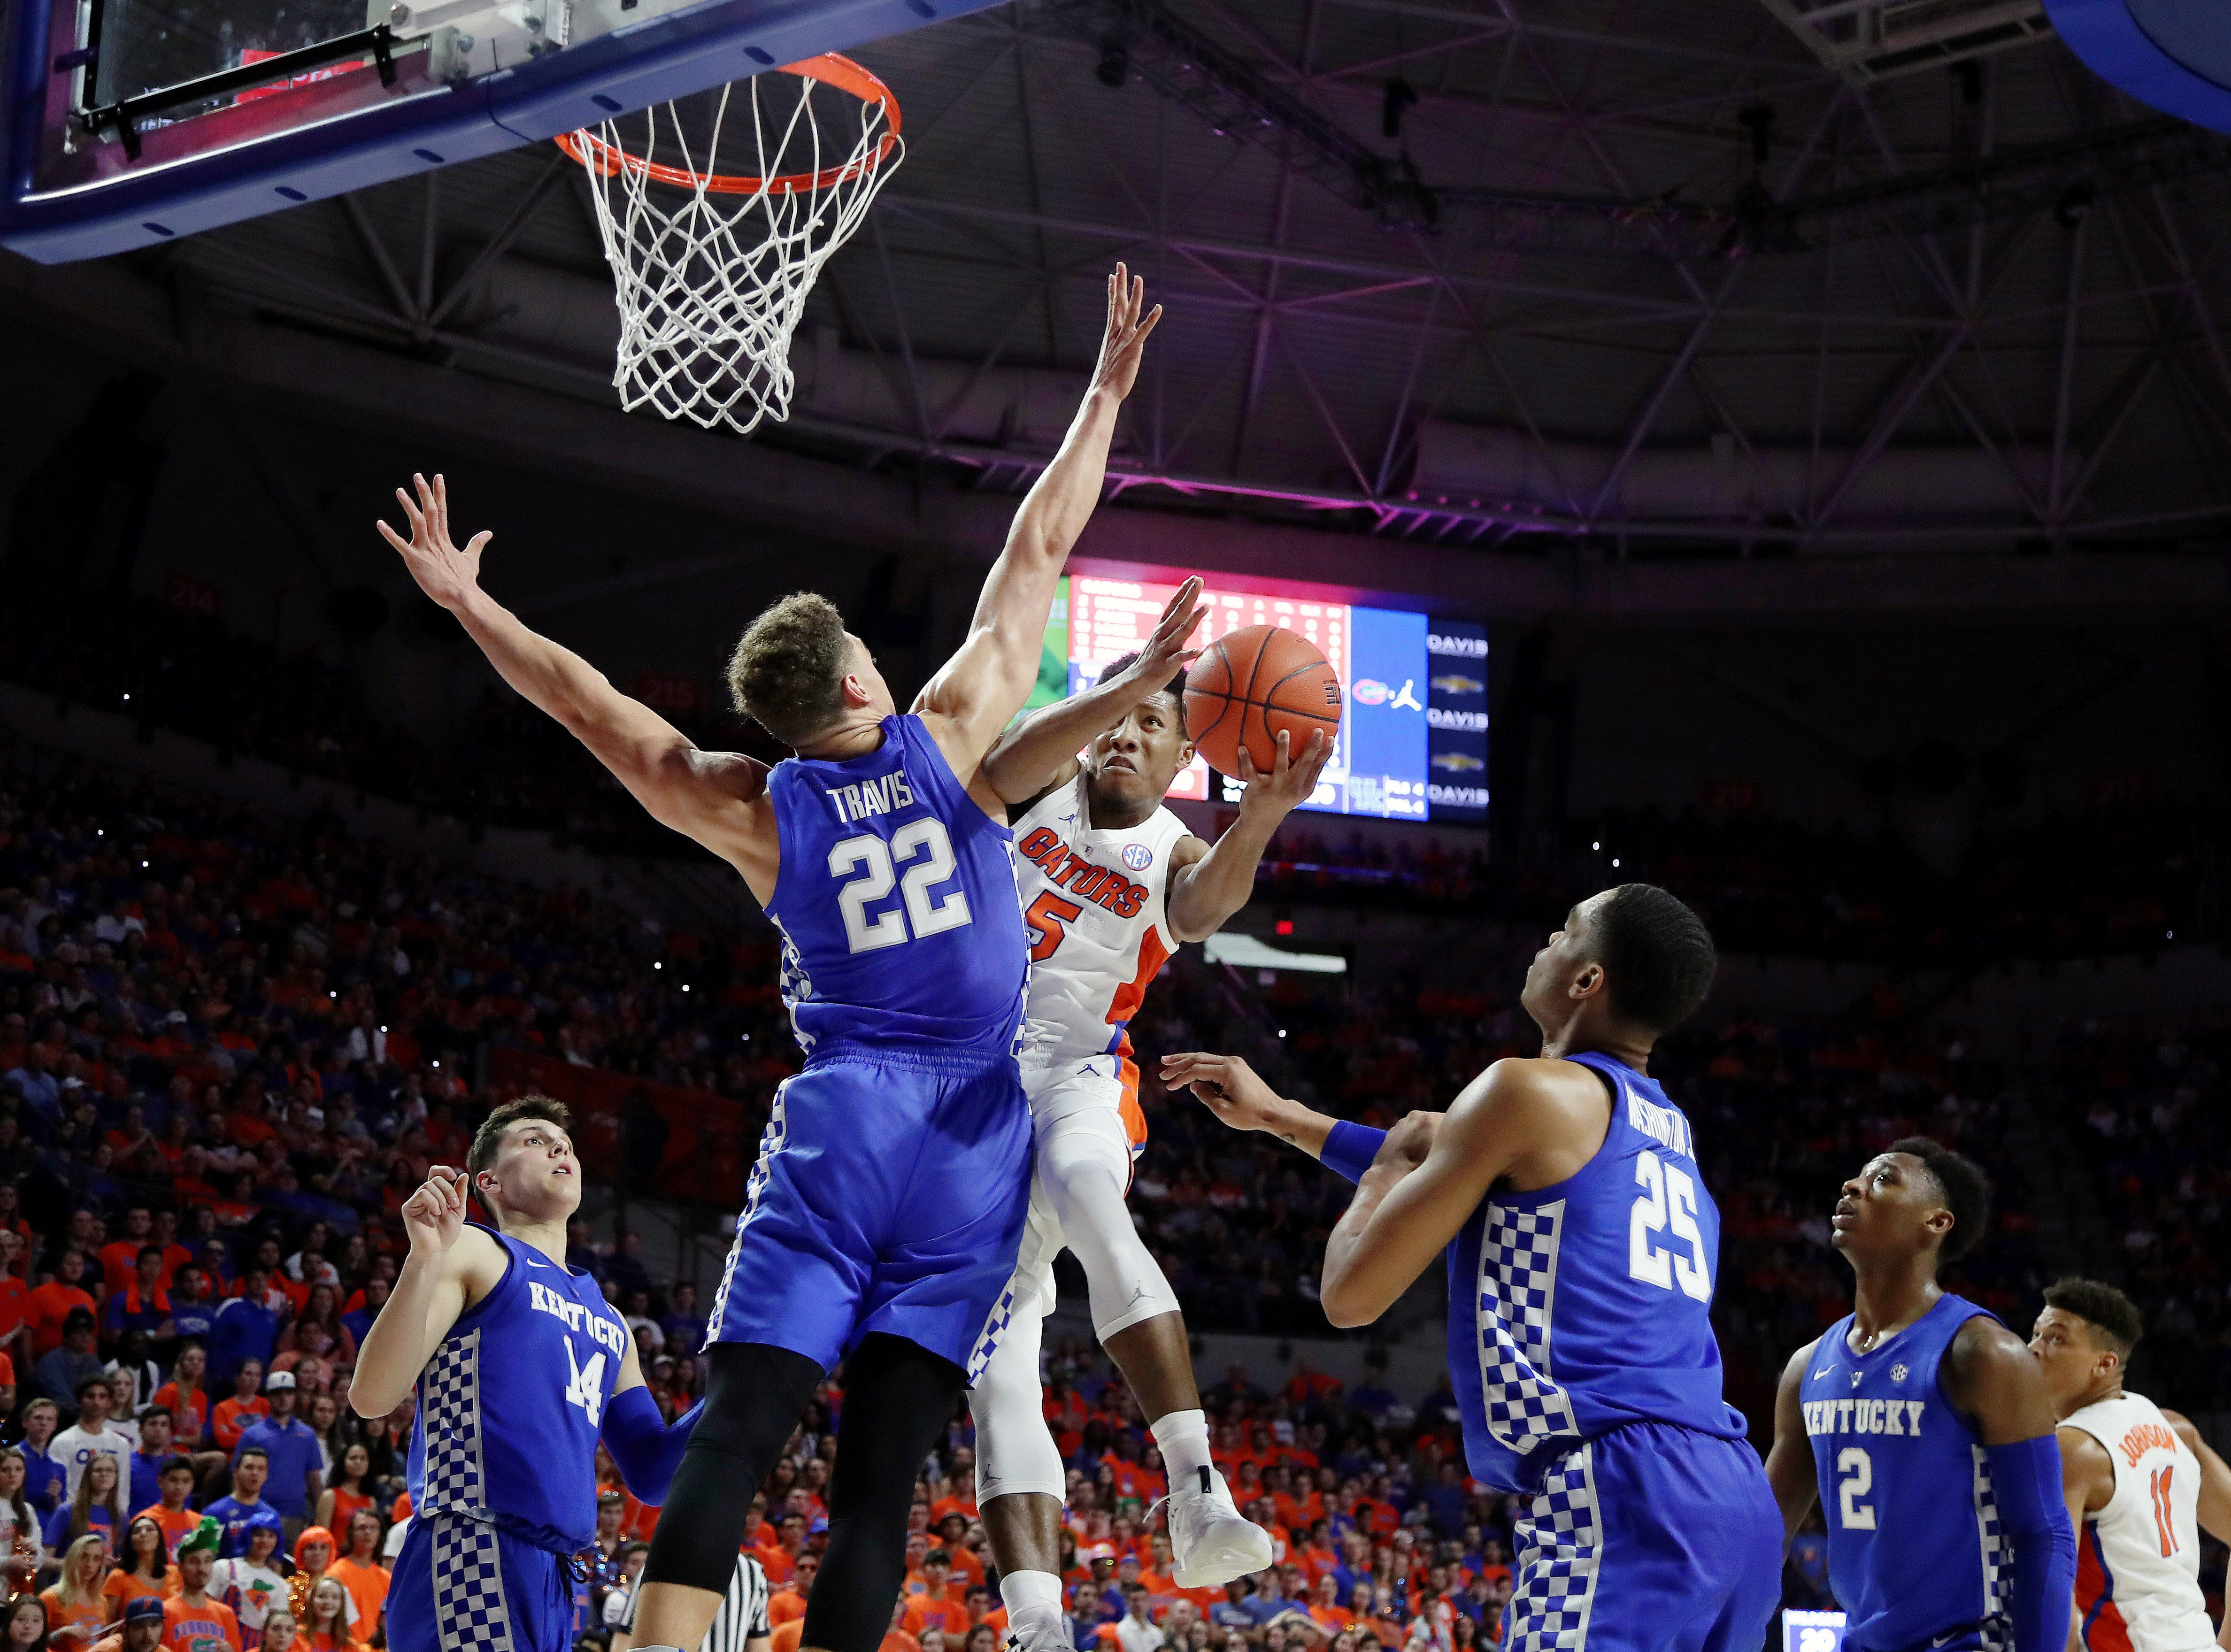 Kentucky Wildcats forward Reid Travis (22) defends Florida Gators guard KeVaughn Allen (5) layup during the first half at Exactech Arena in Gainesville, Florida, on Saturday, Feb. 2, 2019.